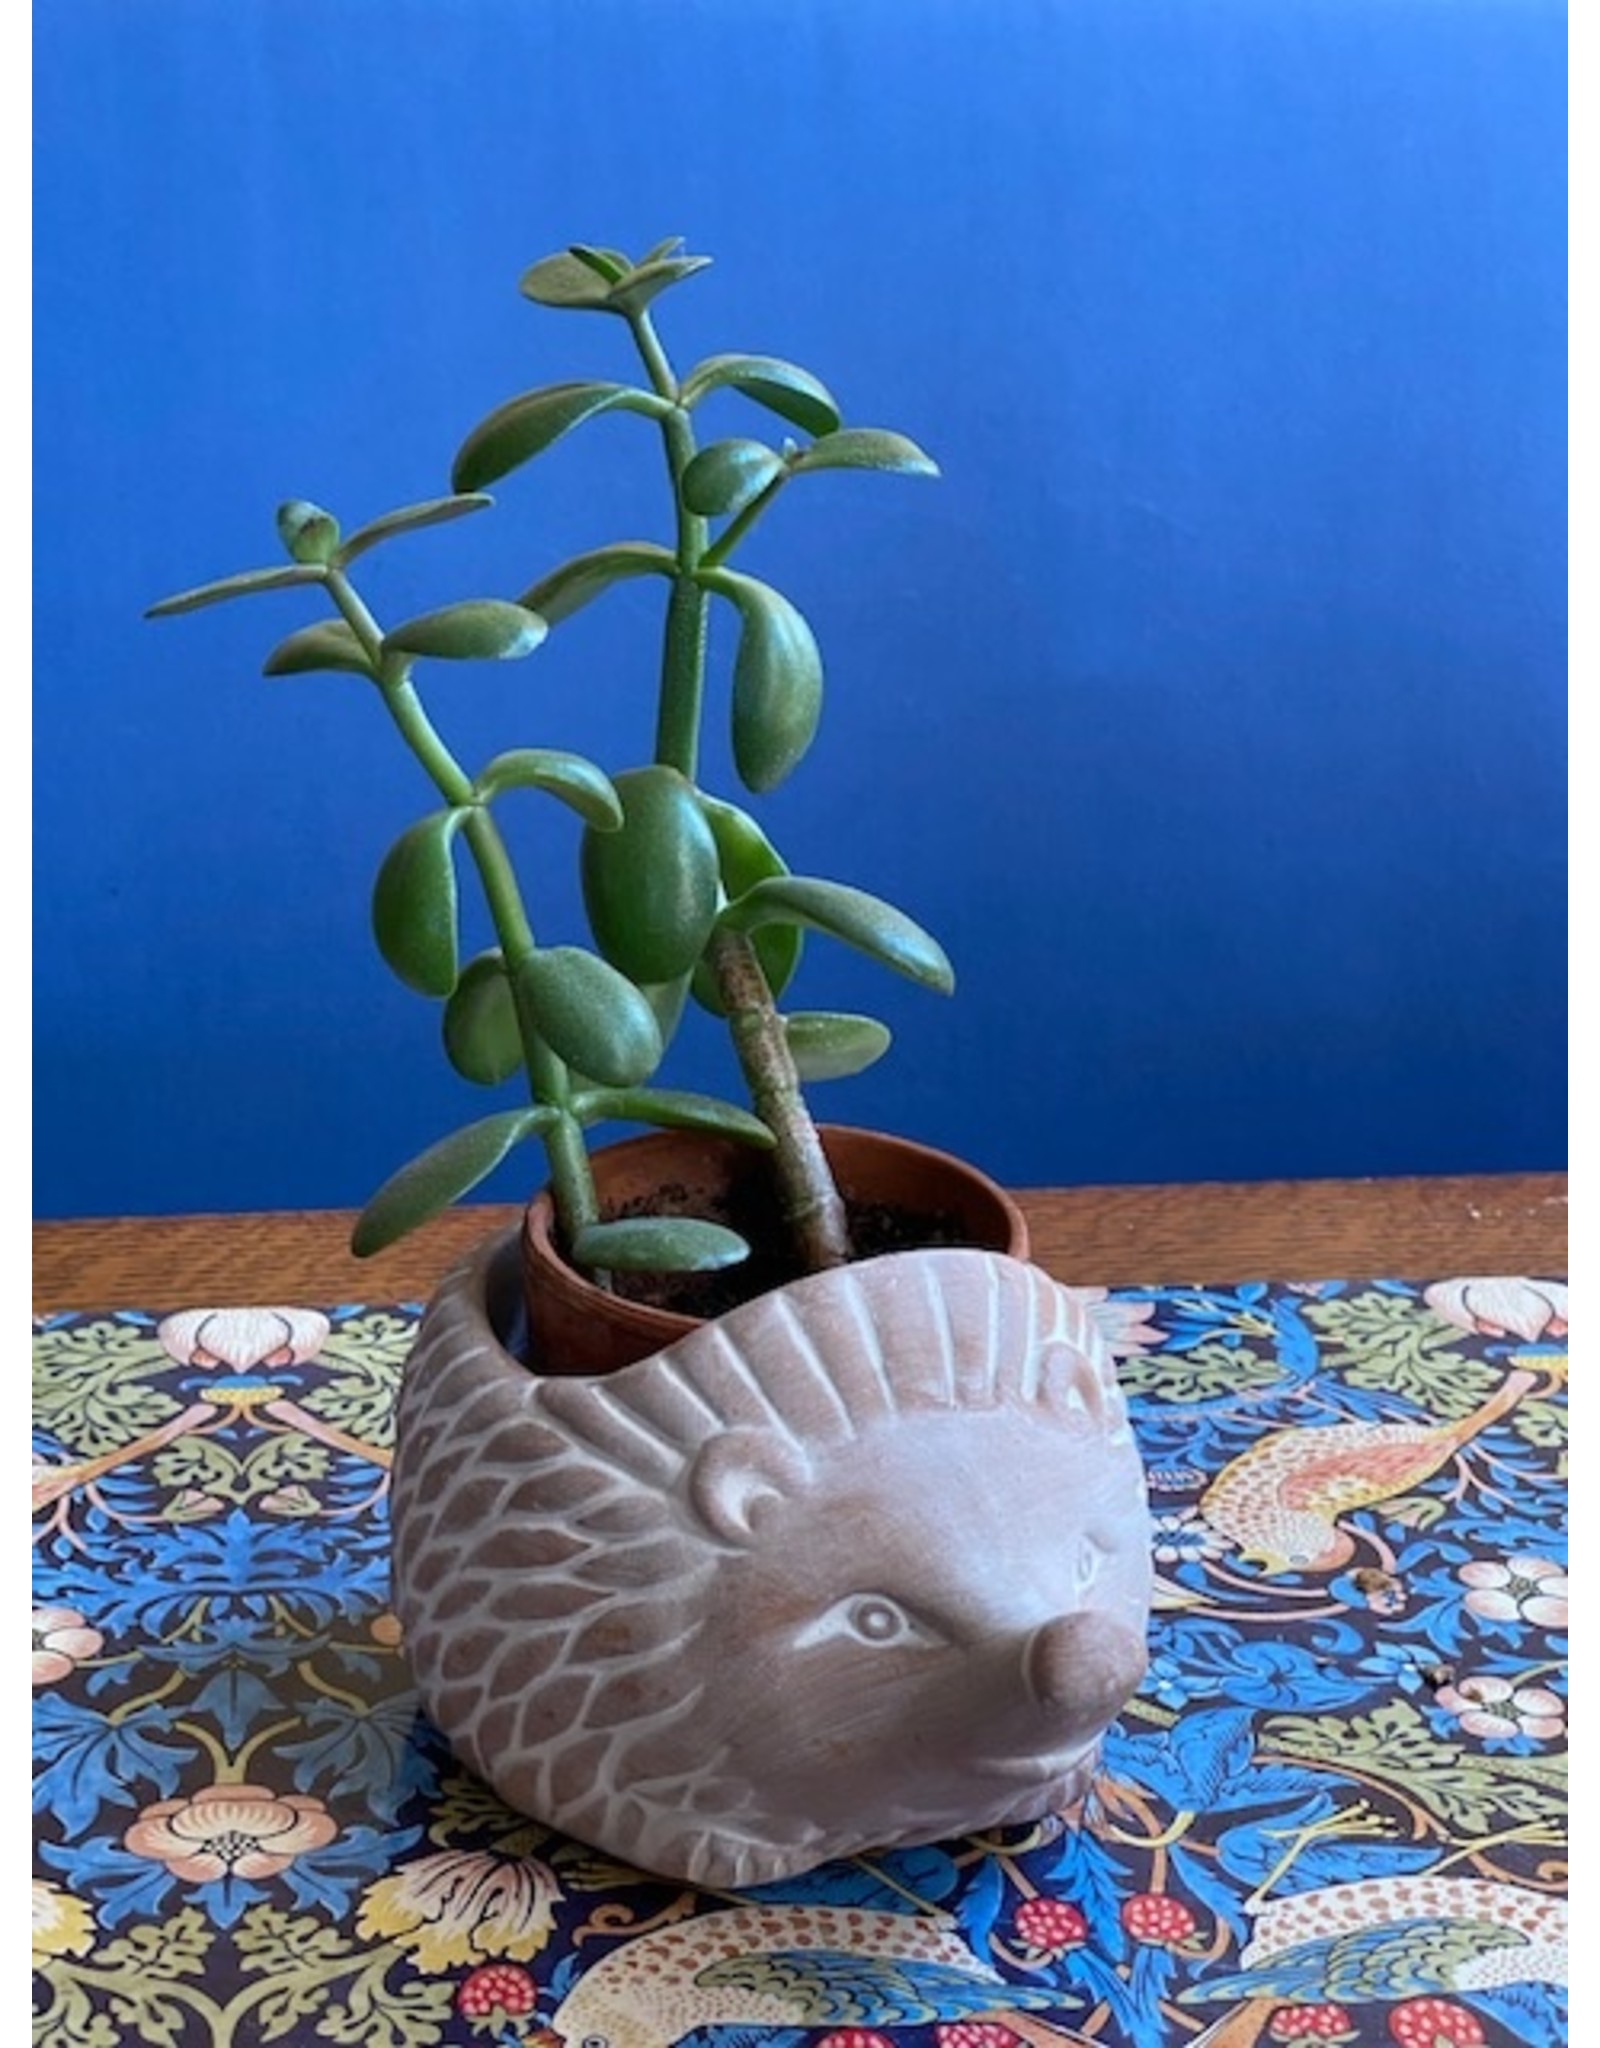 Ten Thousand Villages Mini Hedgehog Terra Cotta Planter